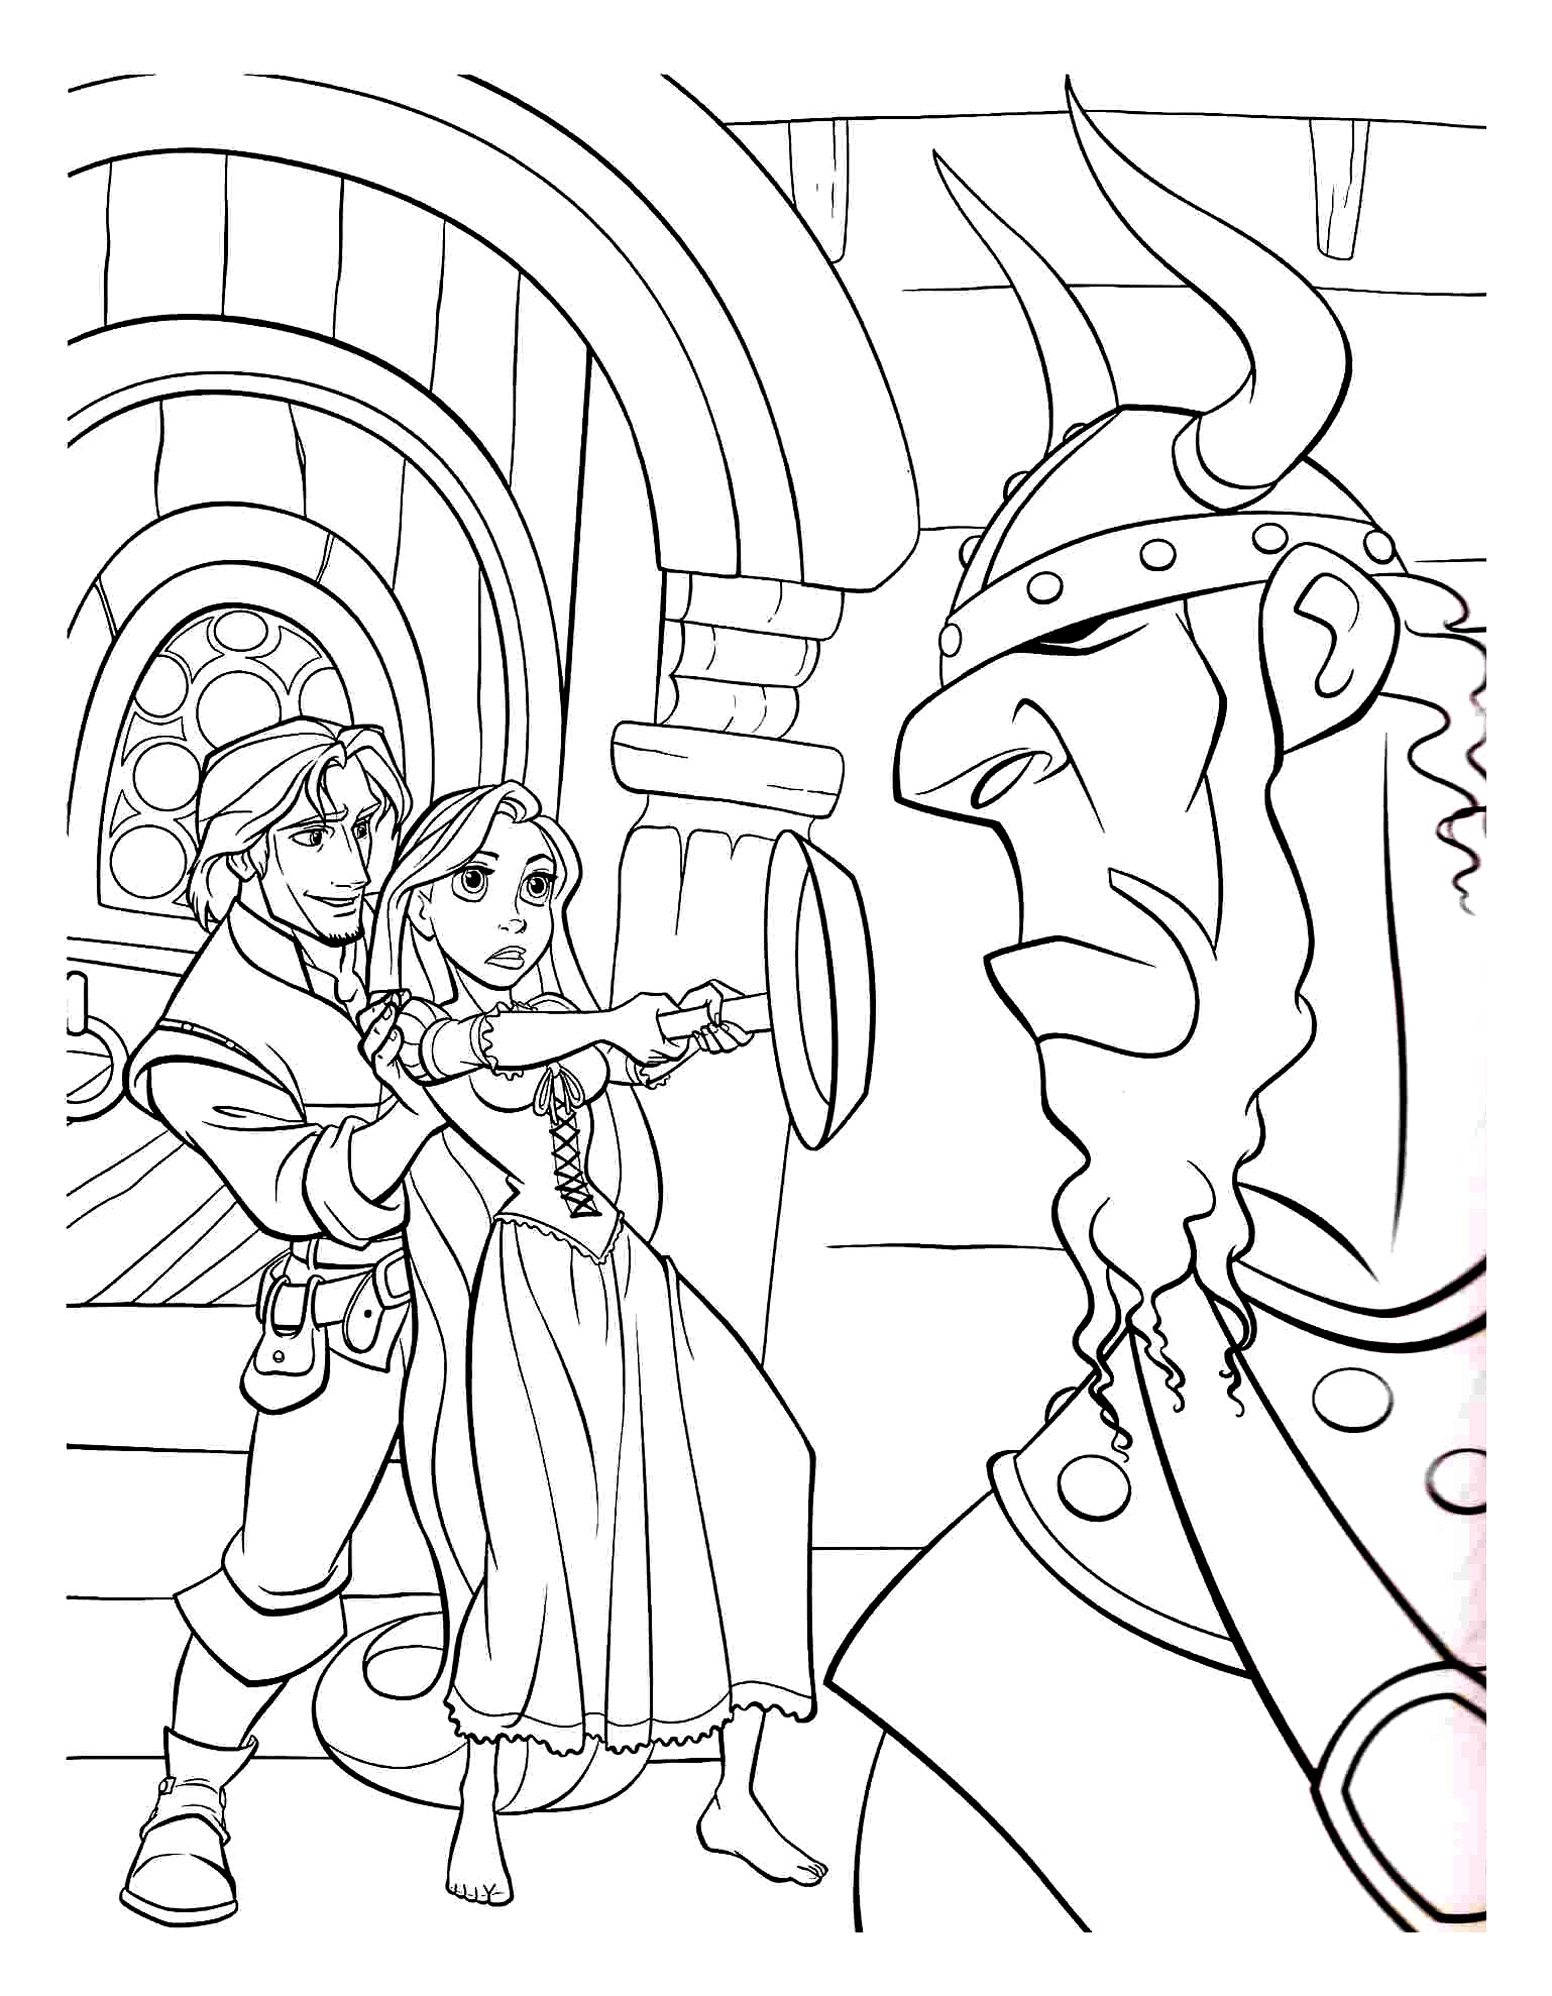 Tangled Coloring Pages: Princess Rapunzel & Flynn Rider ...